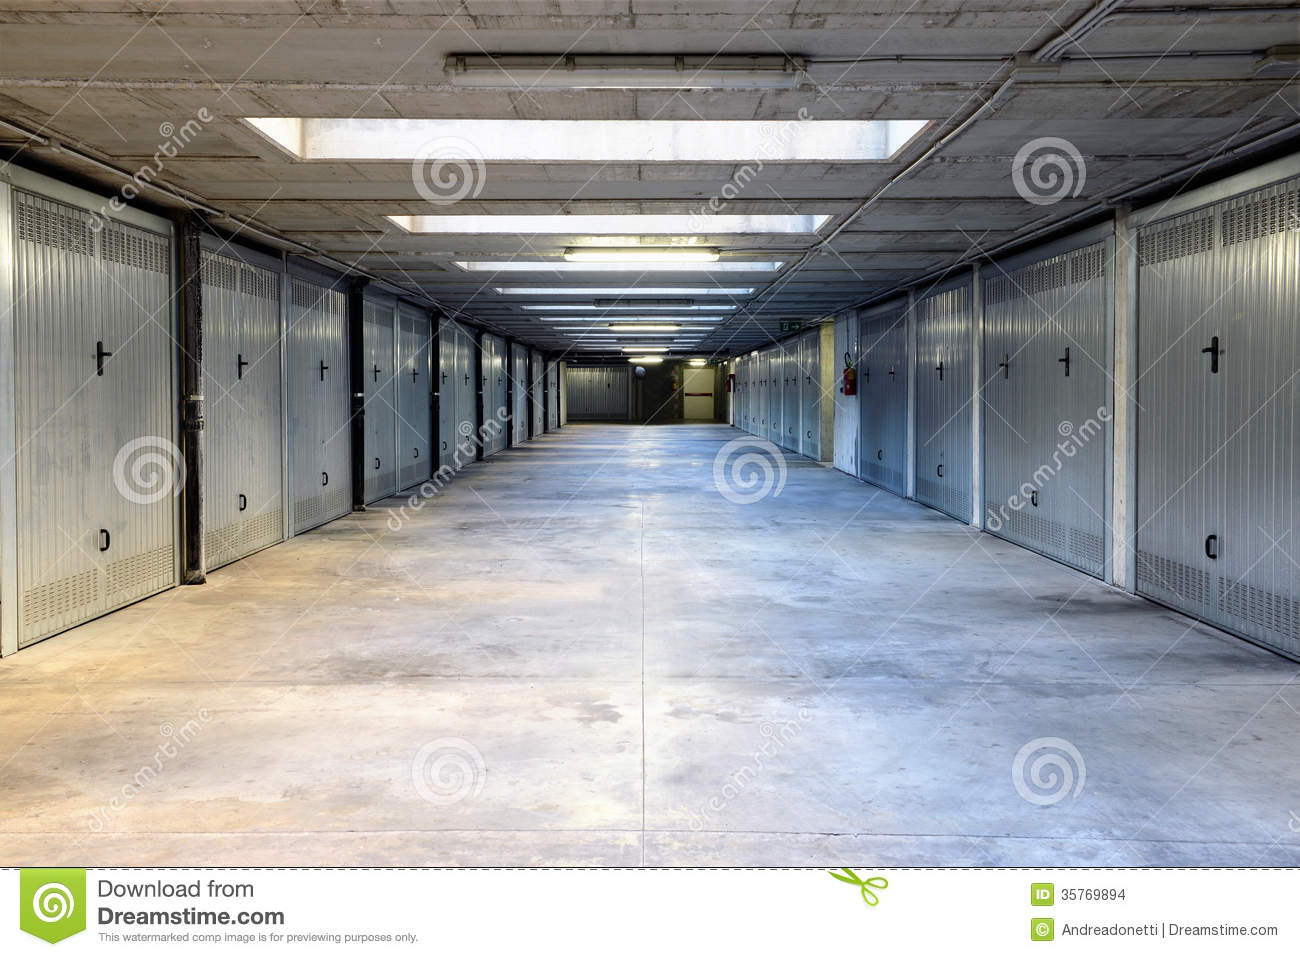 Two rows of garage doors stock images image 35769894 for Drive through garage door